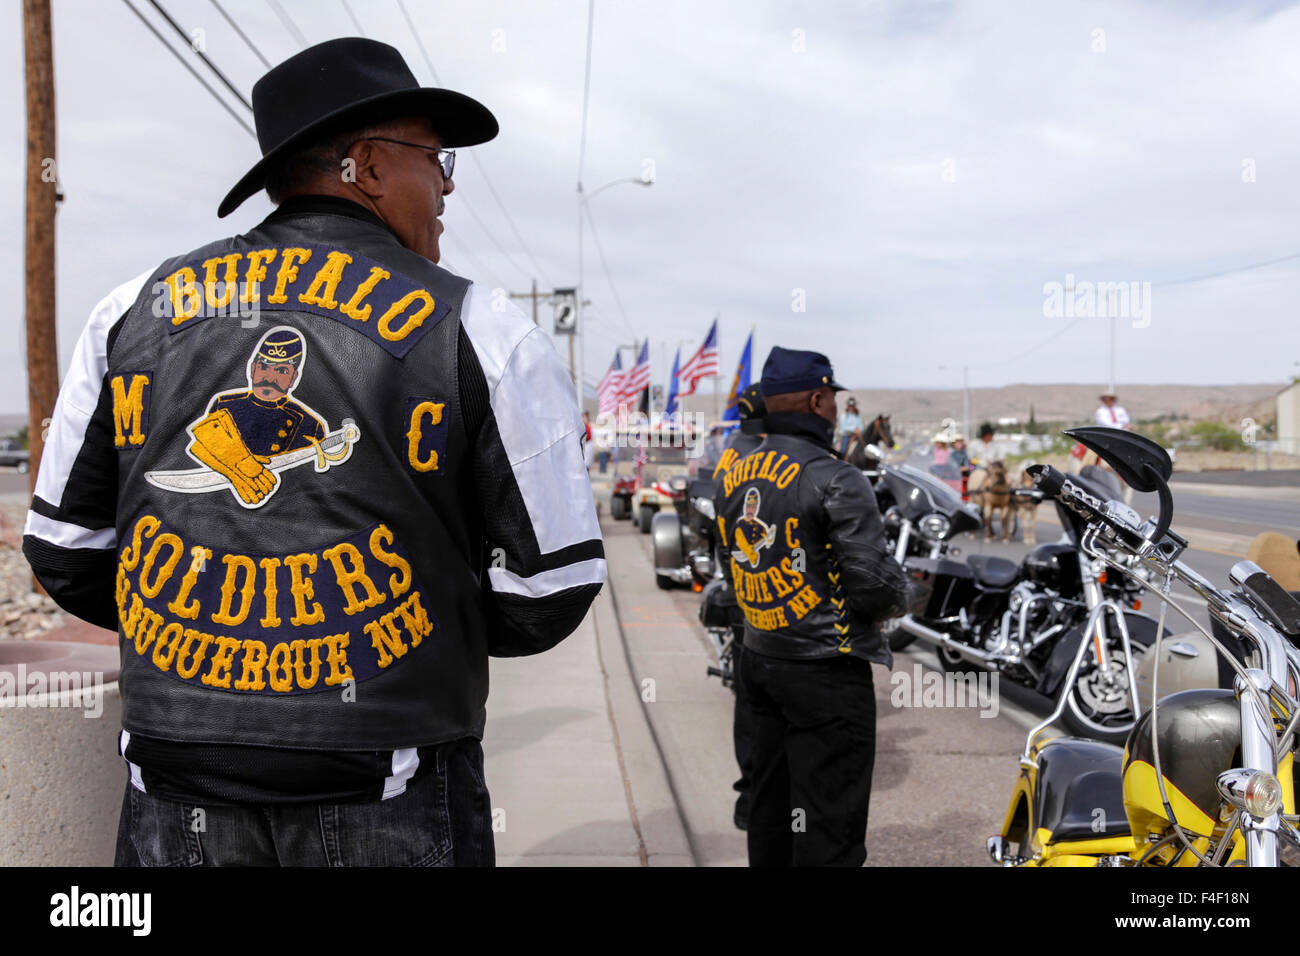 Hamsters Motorcycle Club >> Buffalo Soldiers Motorcycle club waiting to ride in the parade, Truth Stock Photo: 88840773 - Alamy